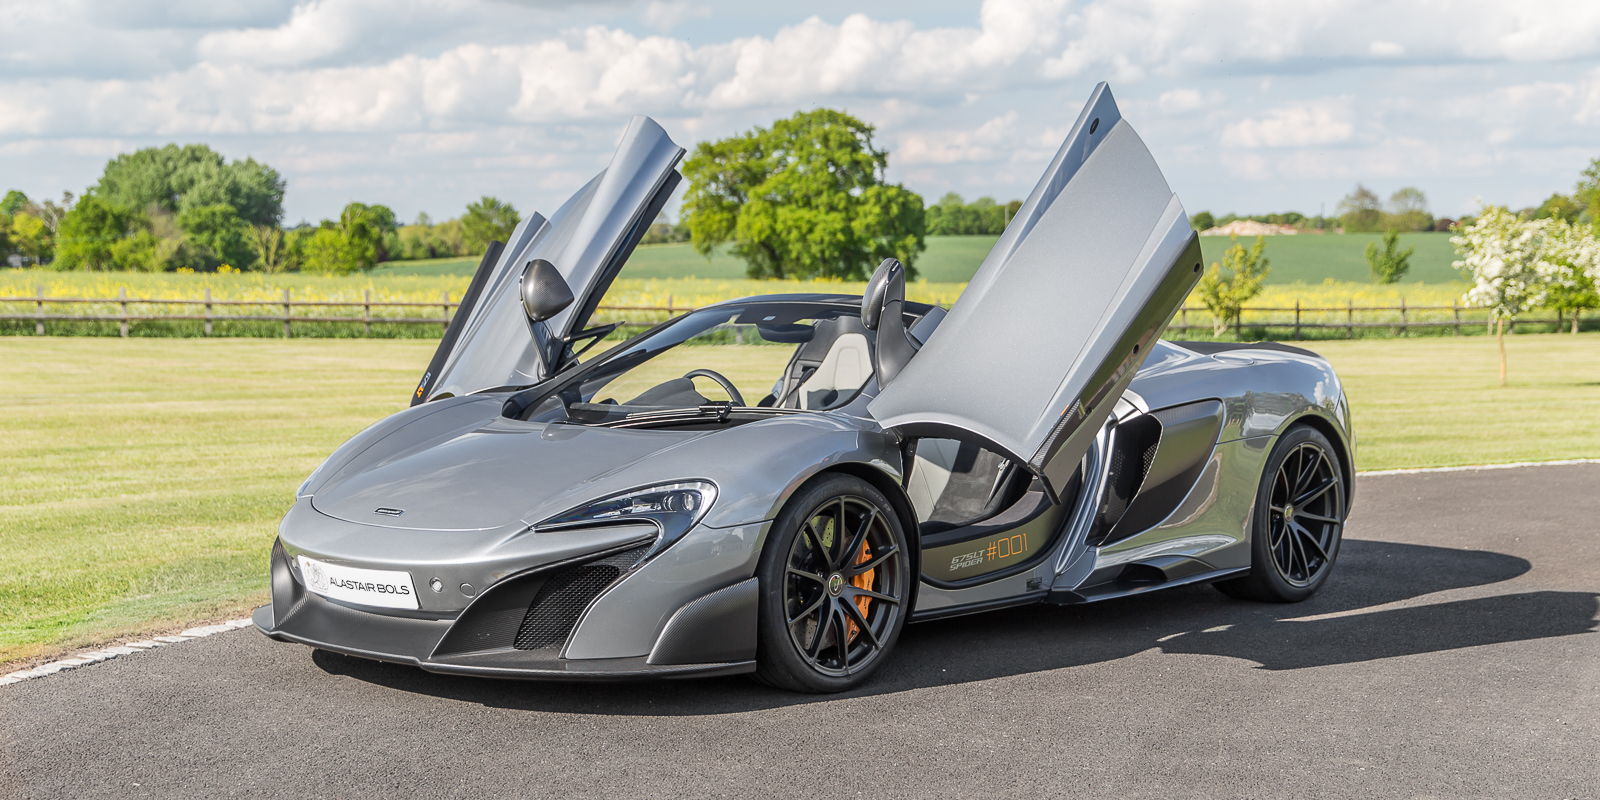 McLaren 675LT Spider – DEPOSIT RECEIVED